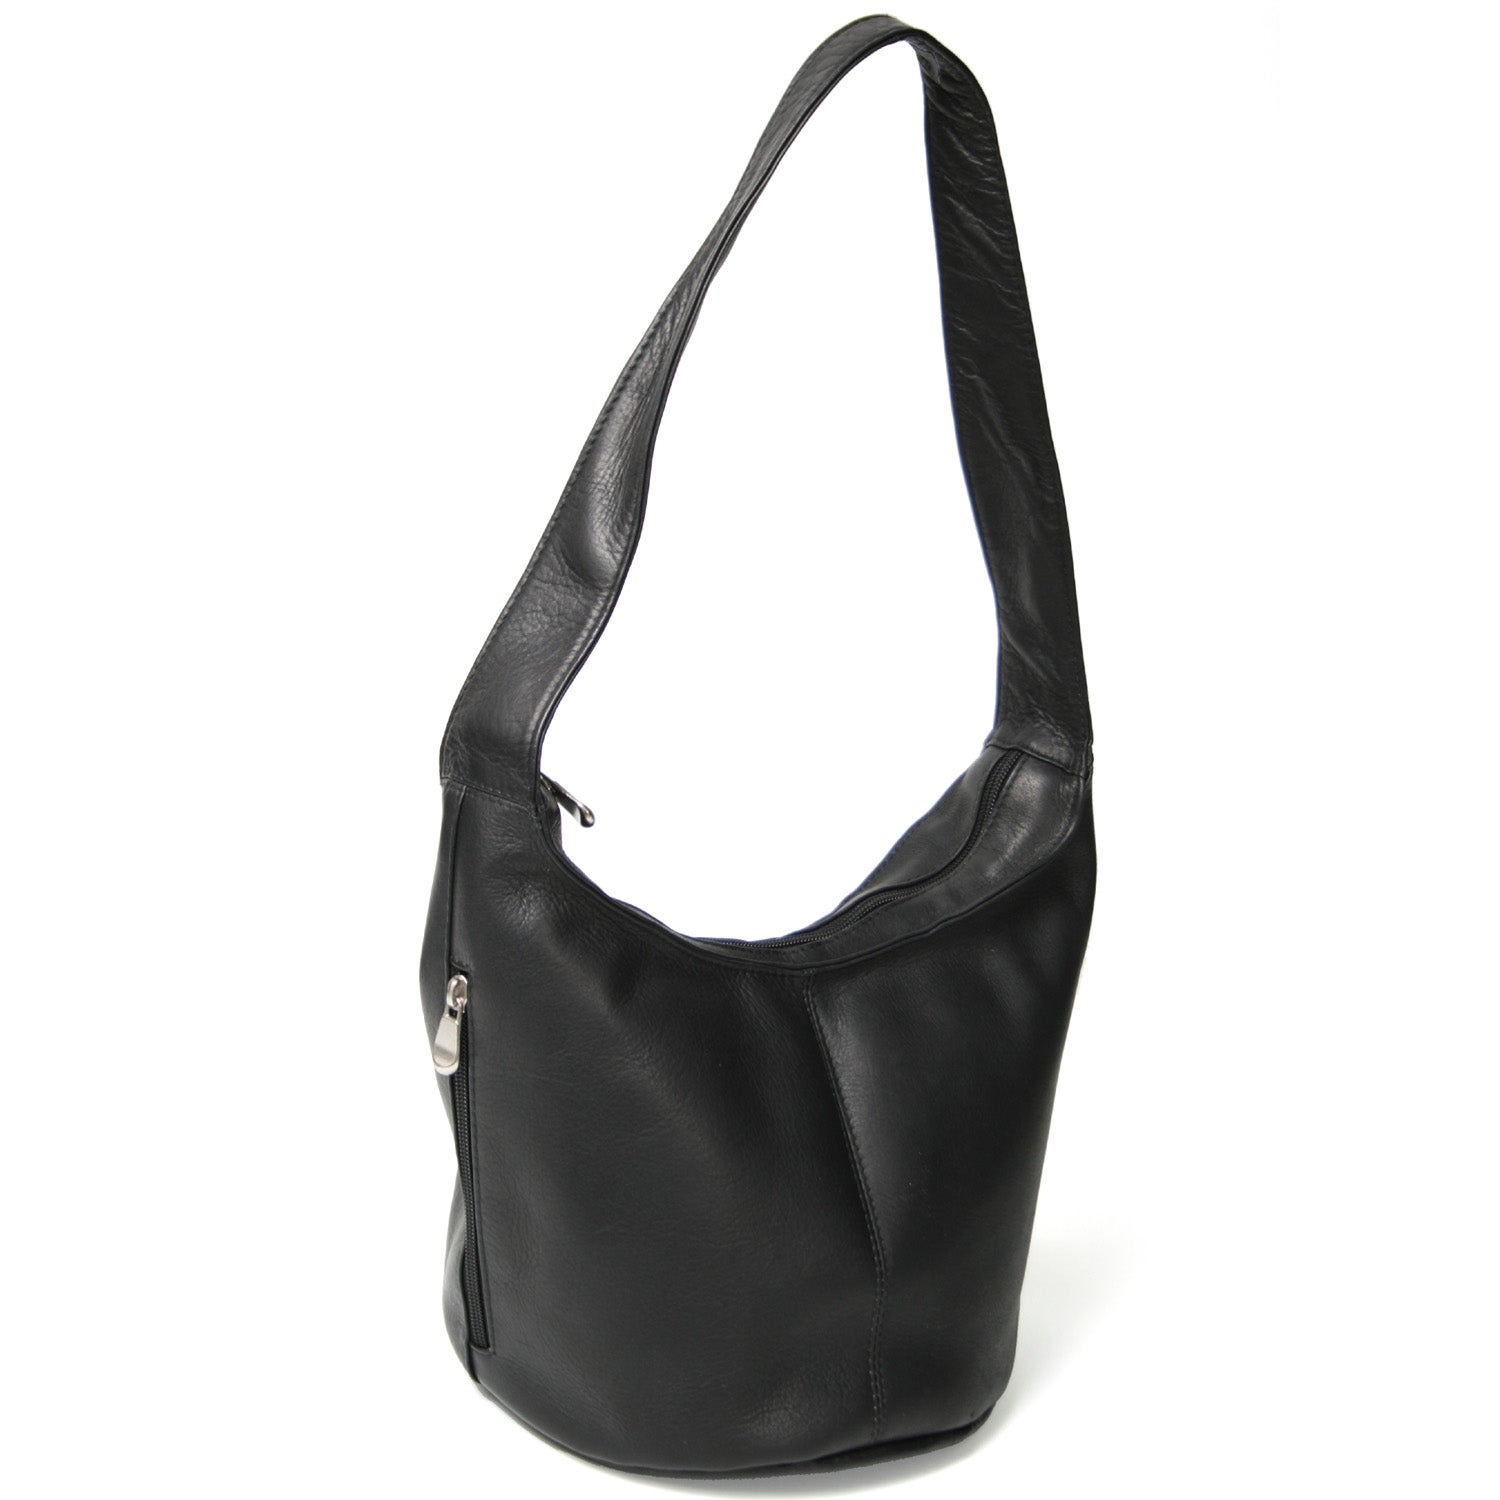 2c72d2d9fecd Royce Leather Women s Vaquetta Hobo Bag with Side Zip Pocket